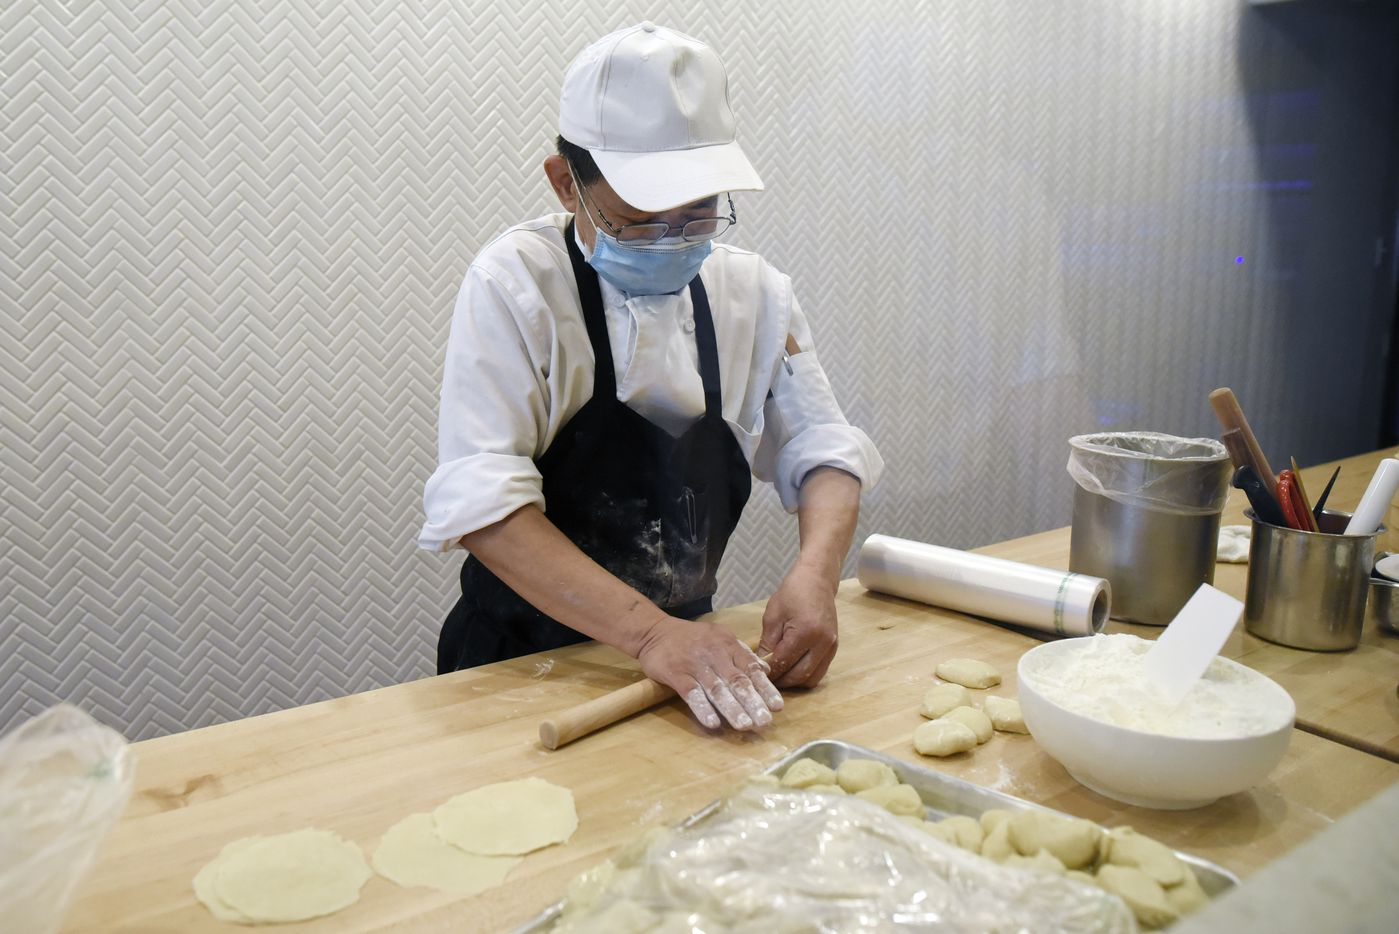 Dumpling chef Harrison Huang makes radish dumplings behind a window at Kitchen Master restaurant in Frisco, Sunday, May 31, 2020.